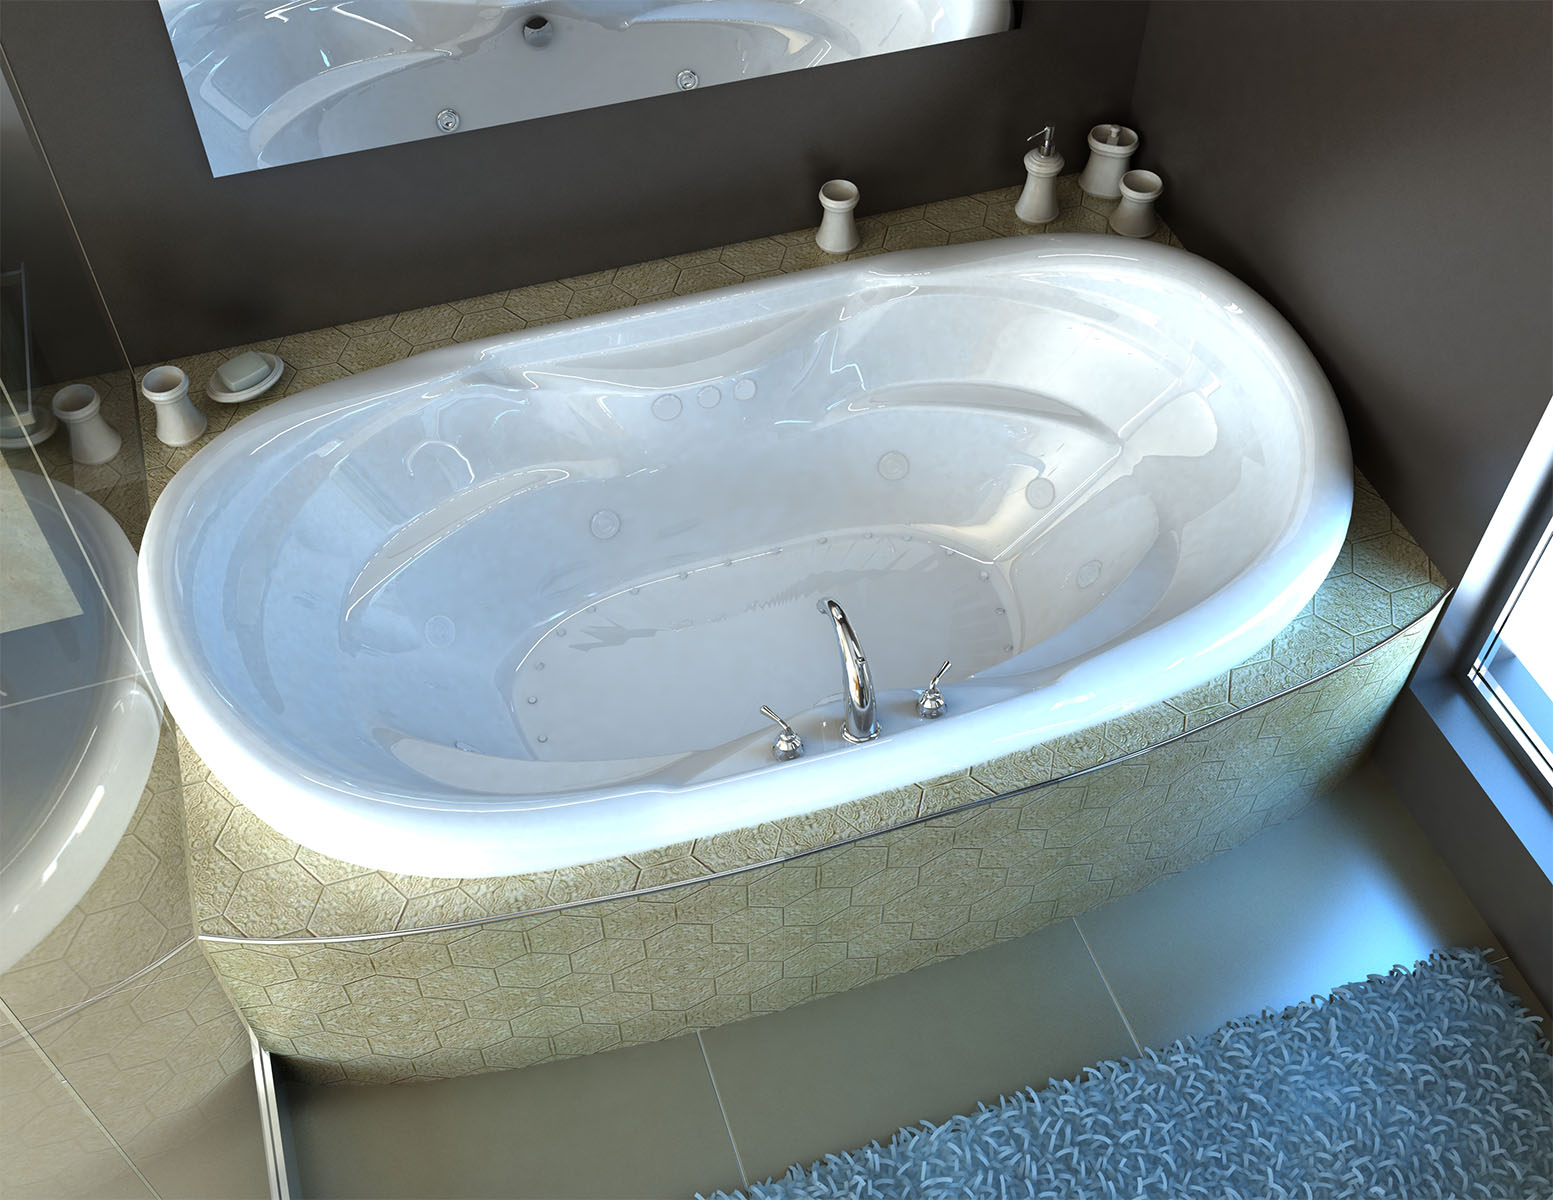 Aline  Waterfall 41 x 70 Oval Air & Whirlpool Jetted Bathtub